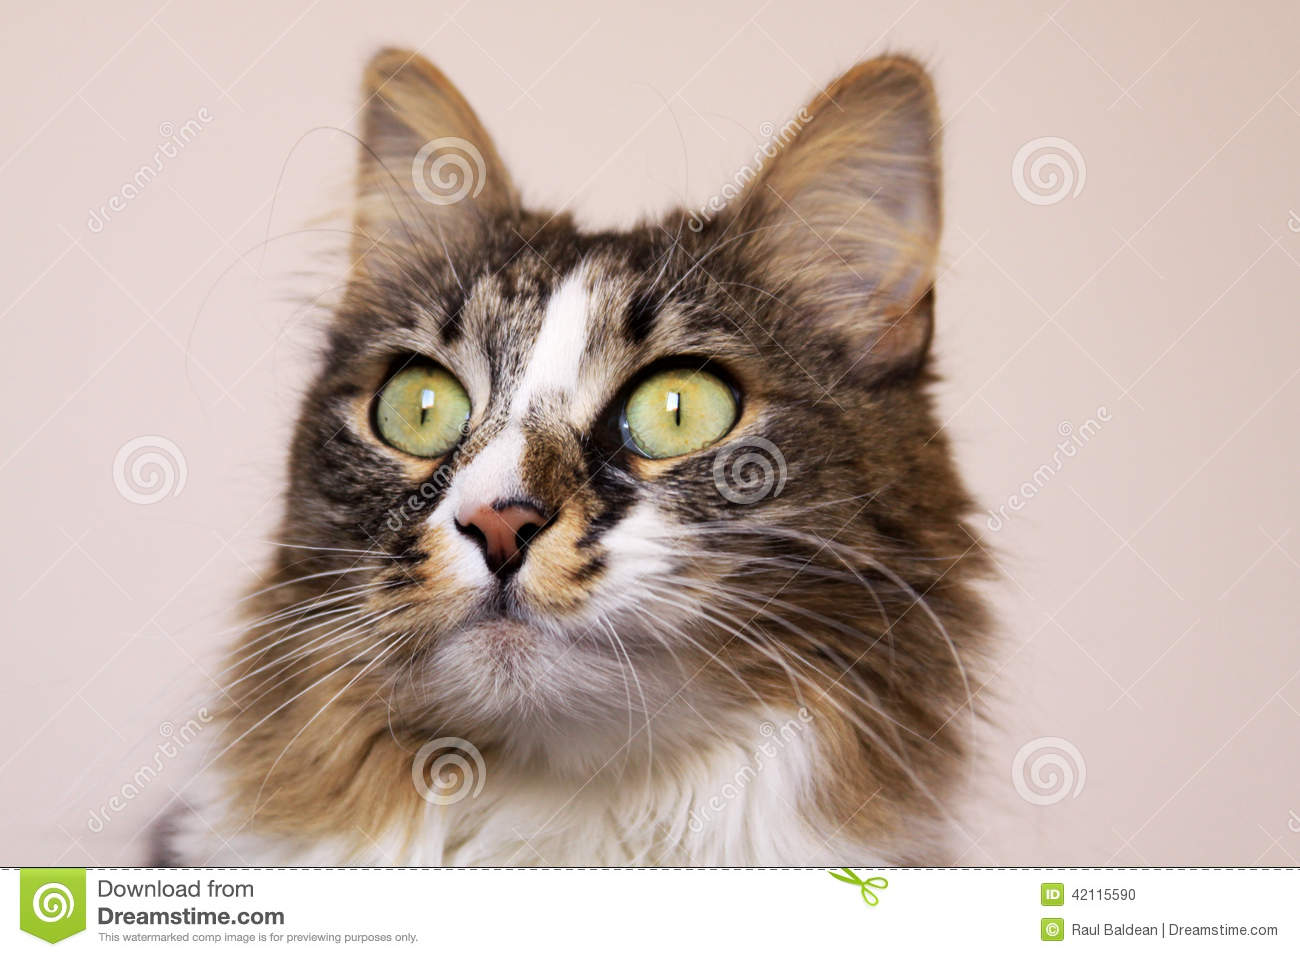 Cat staring with wide opened eyes